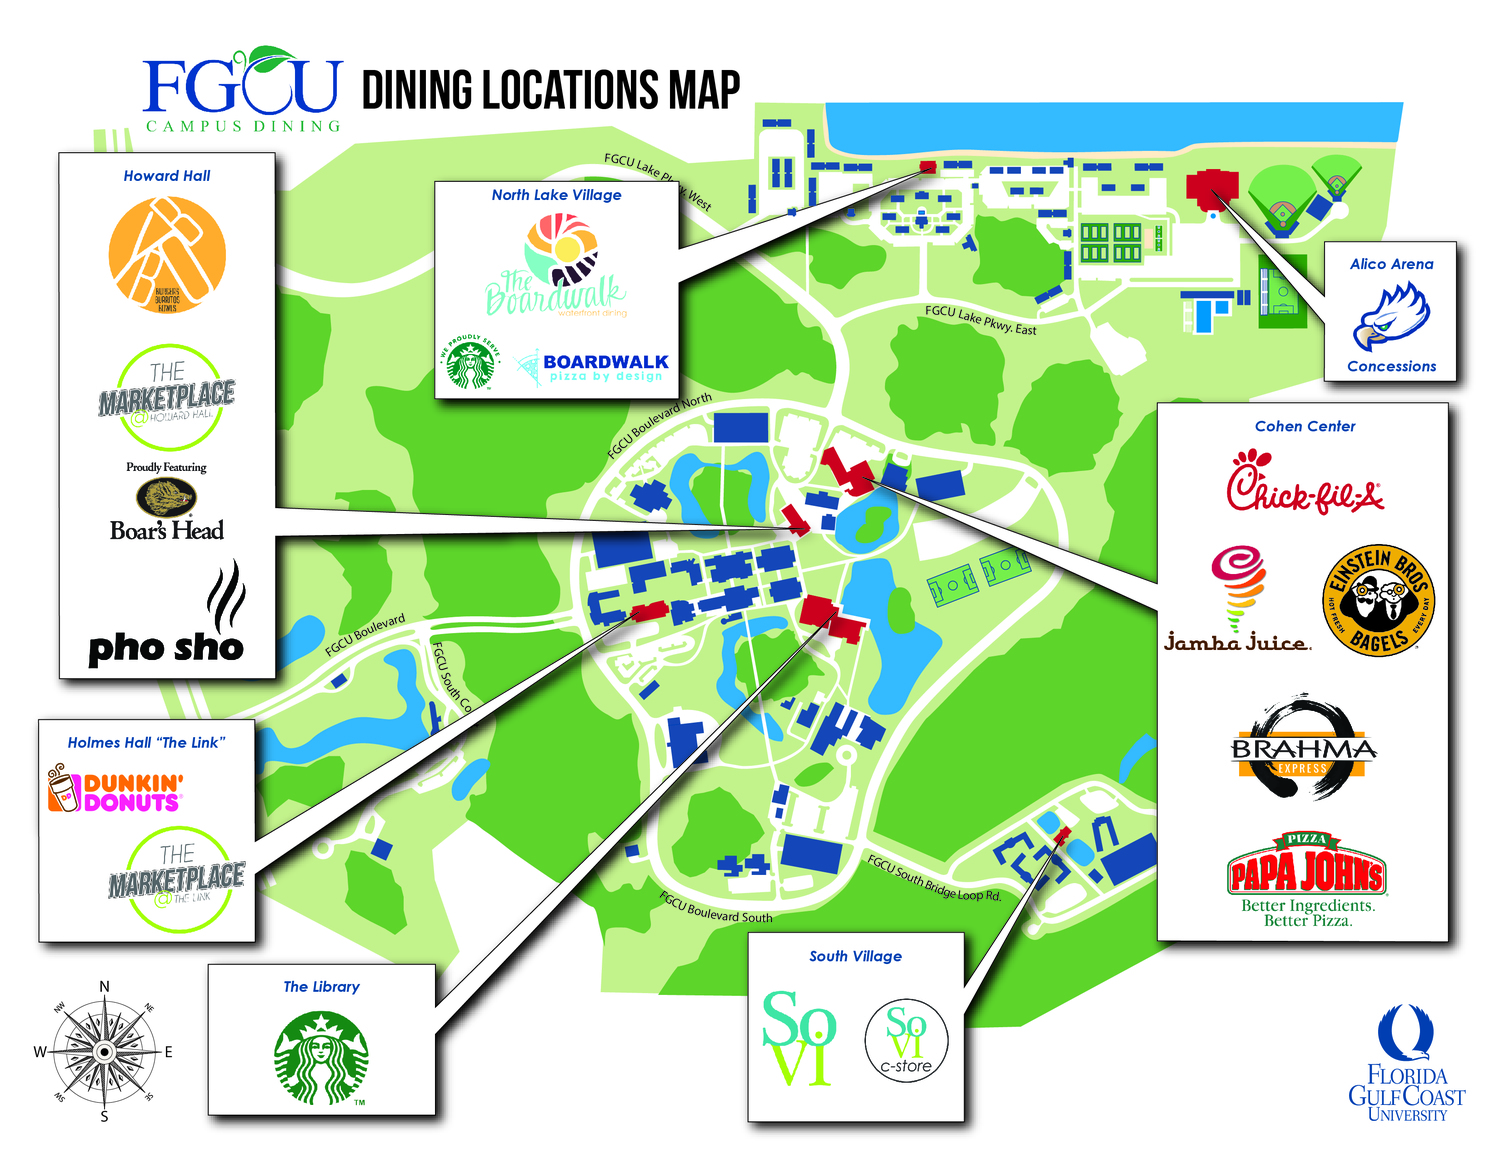 Dine On Campus at Florida Gulf Coast University || Where To Eat?